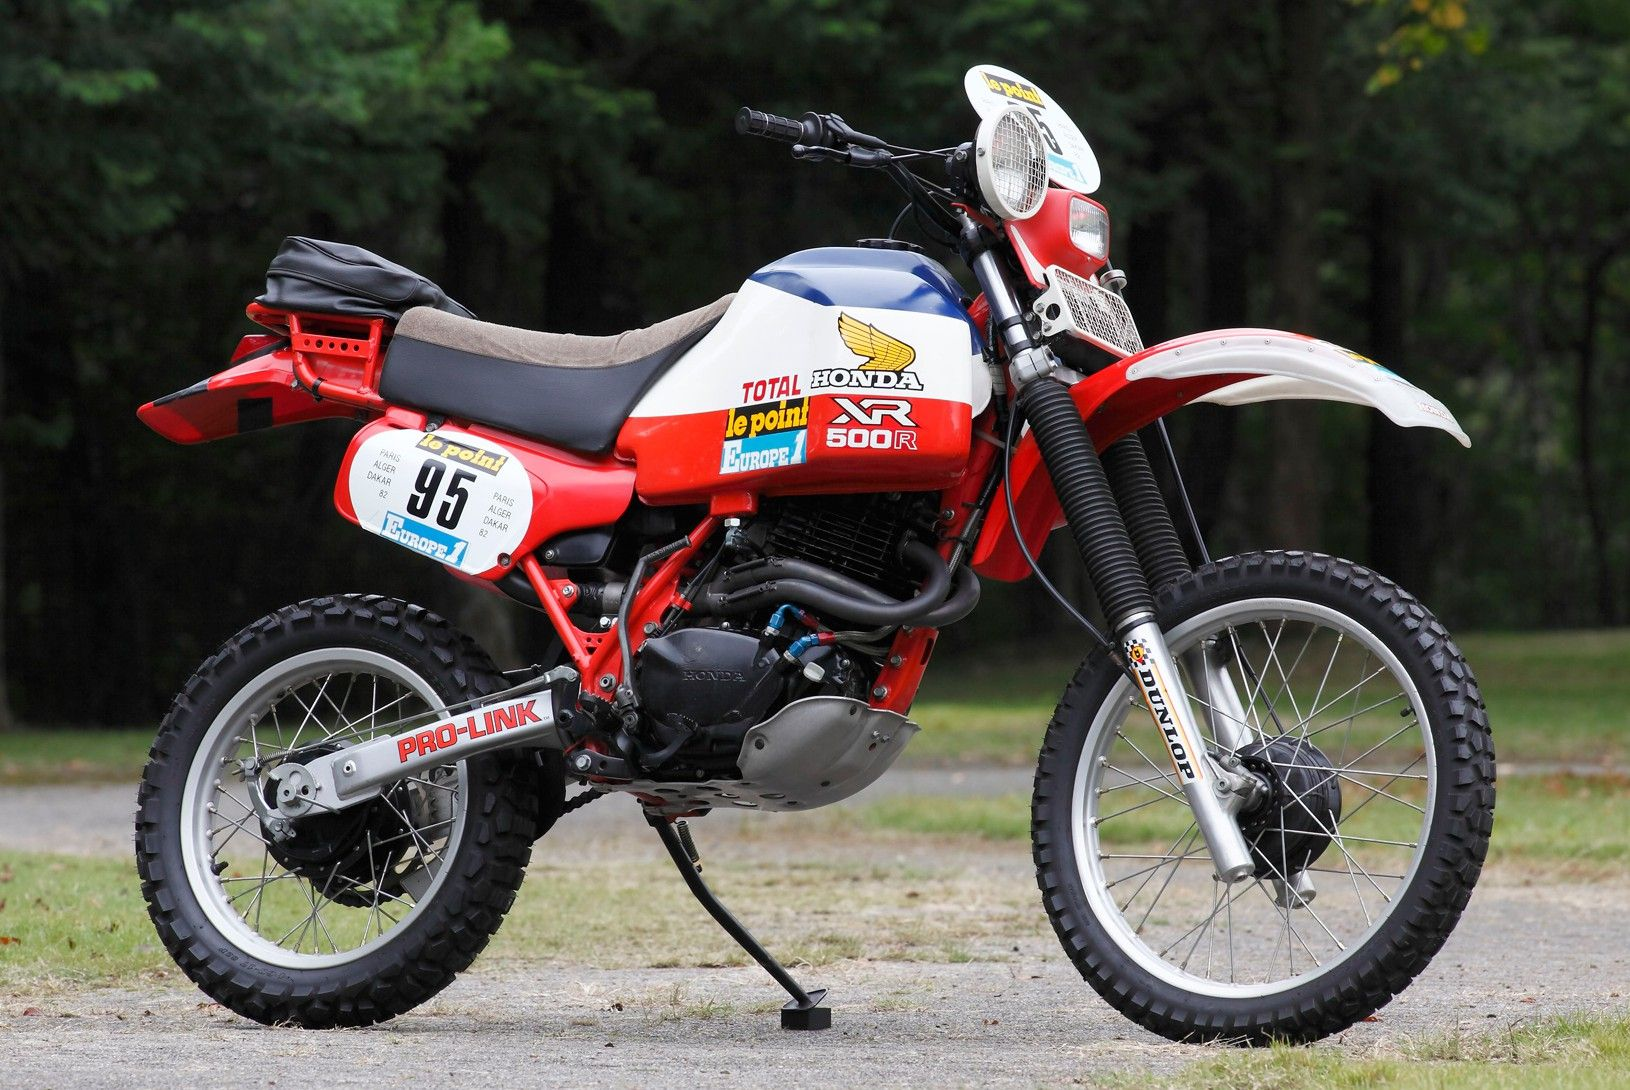 honda xl 500 r paris dakar 1982 jirrka motos guapas. Black Bedroom Furniture Sets. Home Design Ideas